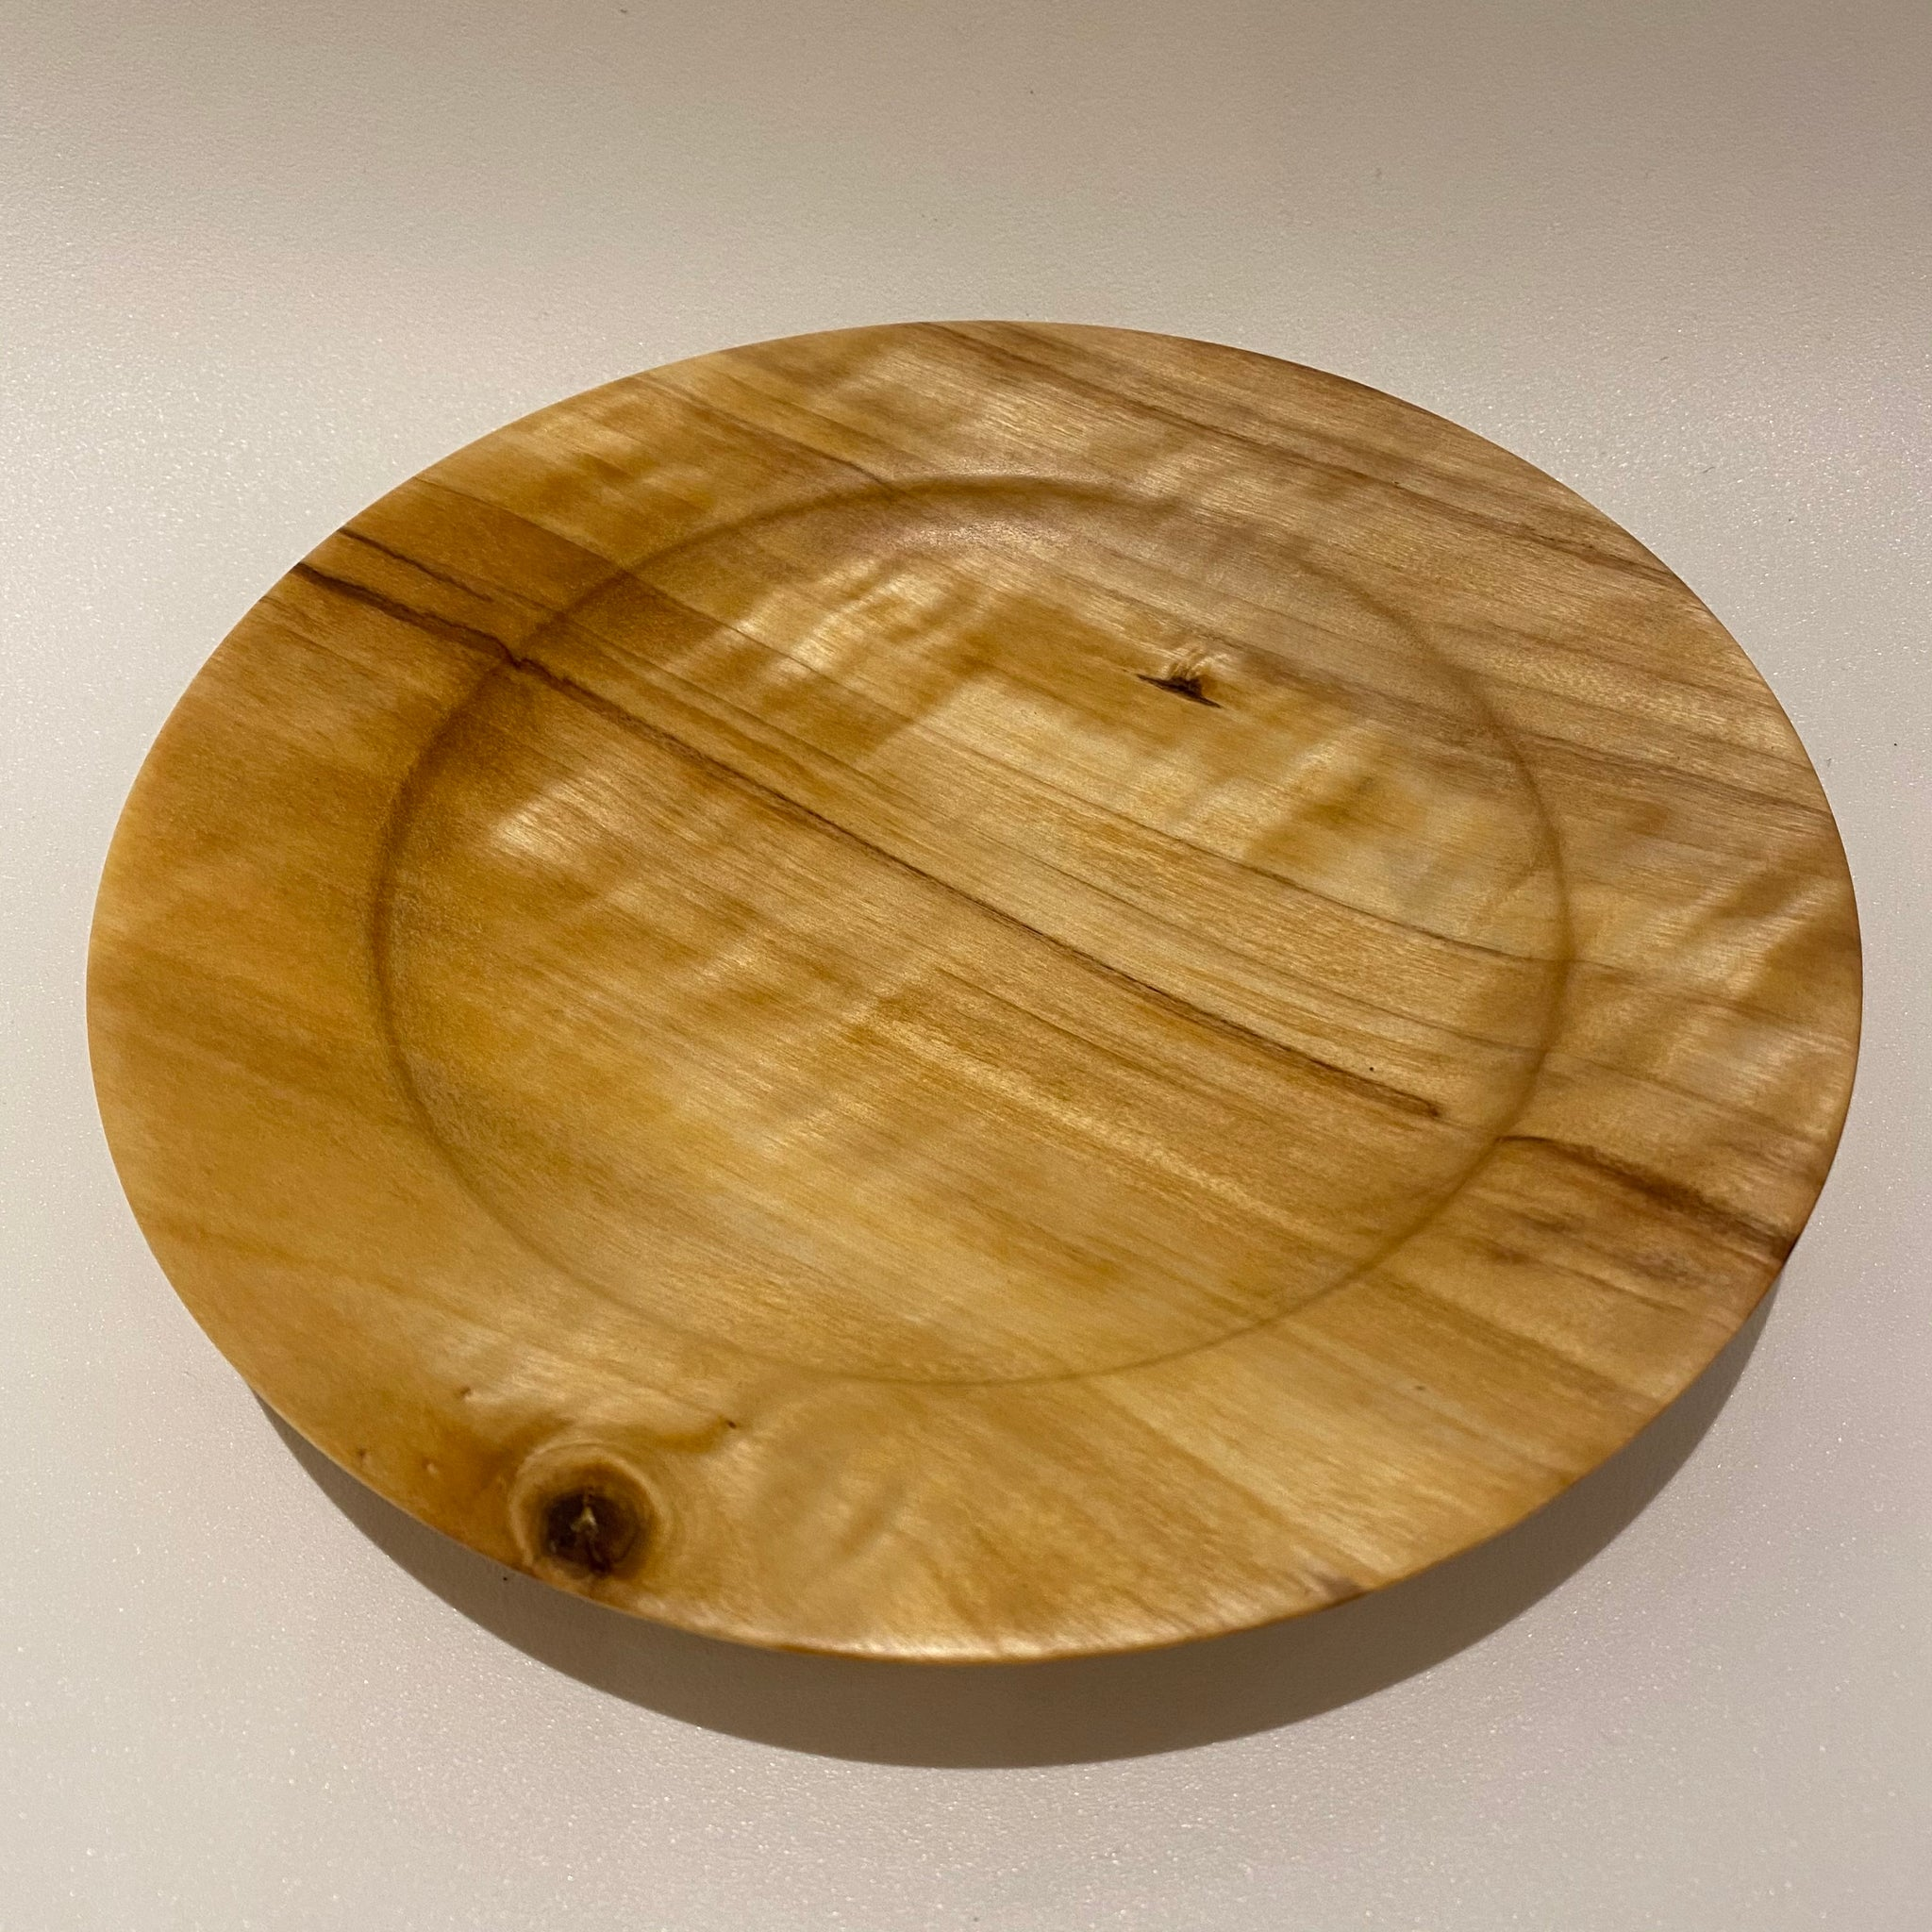 Duane Rice Sweet Gum Small Platter